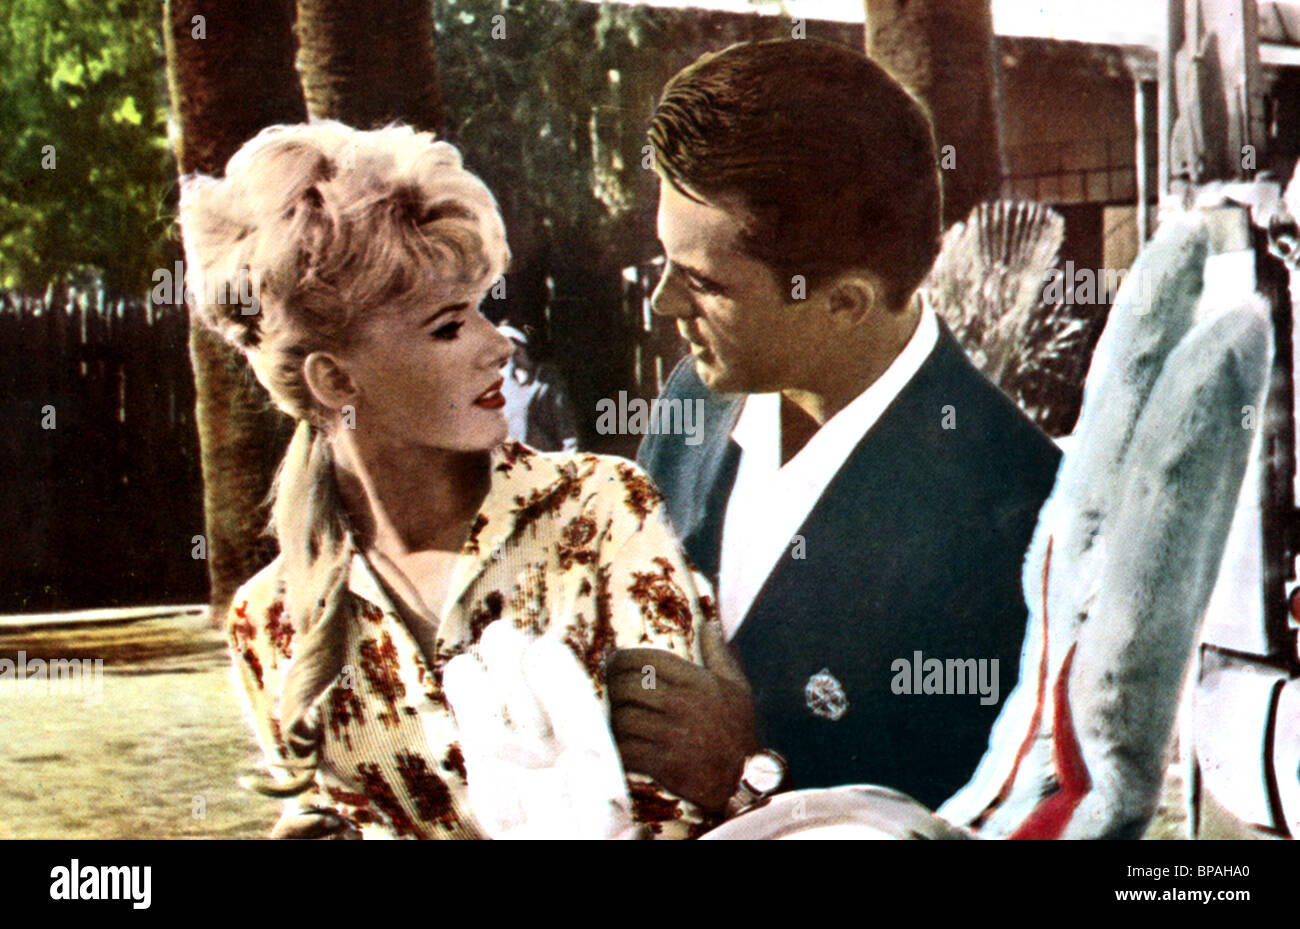 donahue divorced singles Troy donahue photos, including production stills, premiere photos and other event photos, publicity photos, behind-the-scenes, and more.